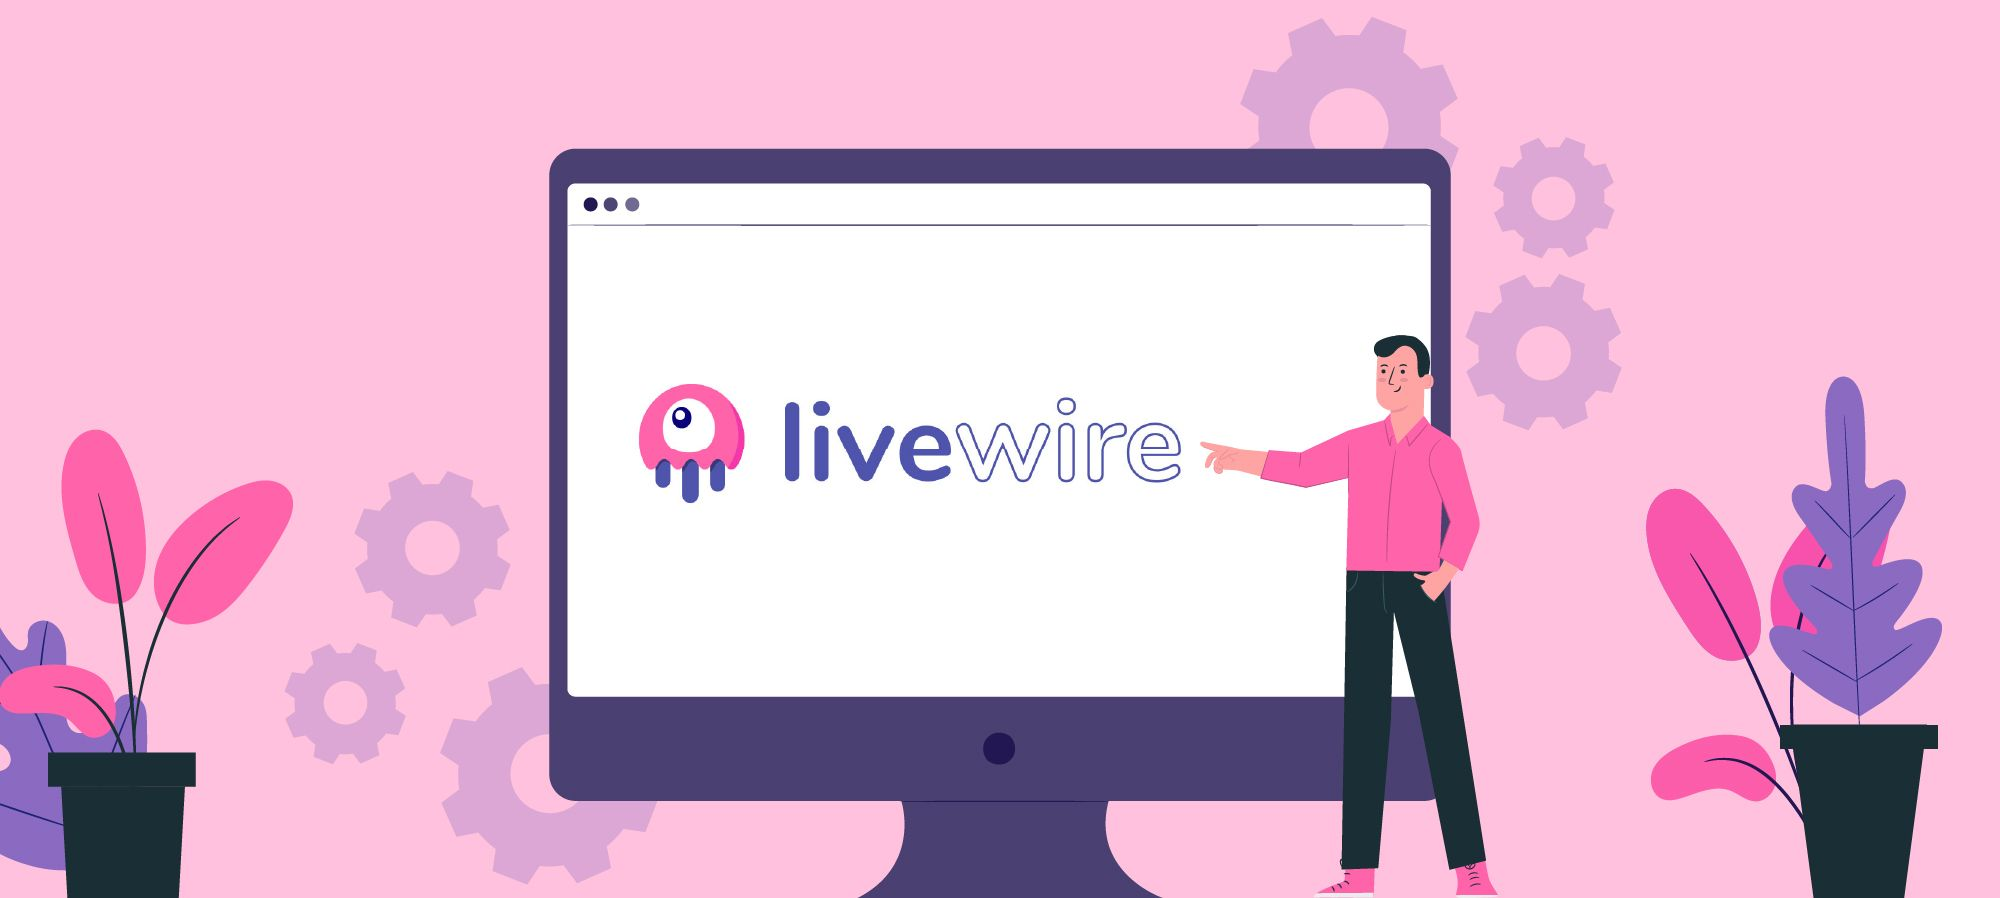 Laravel Livewire Shopping Cart Demo - Step by Step Guide